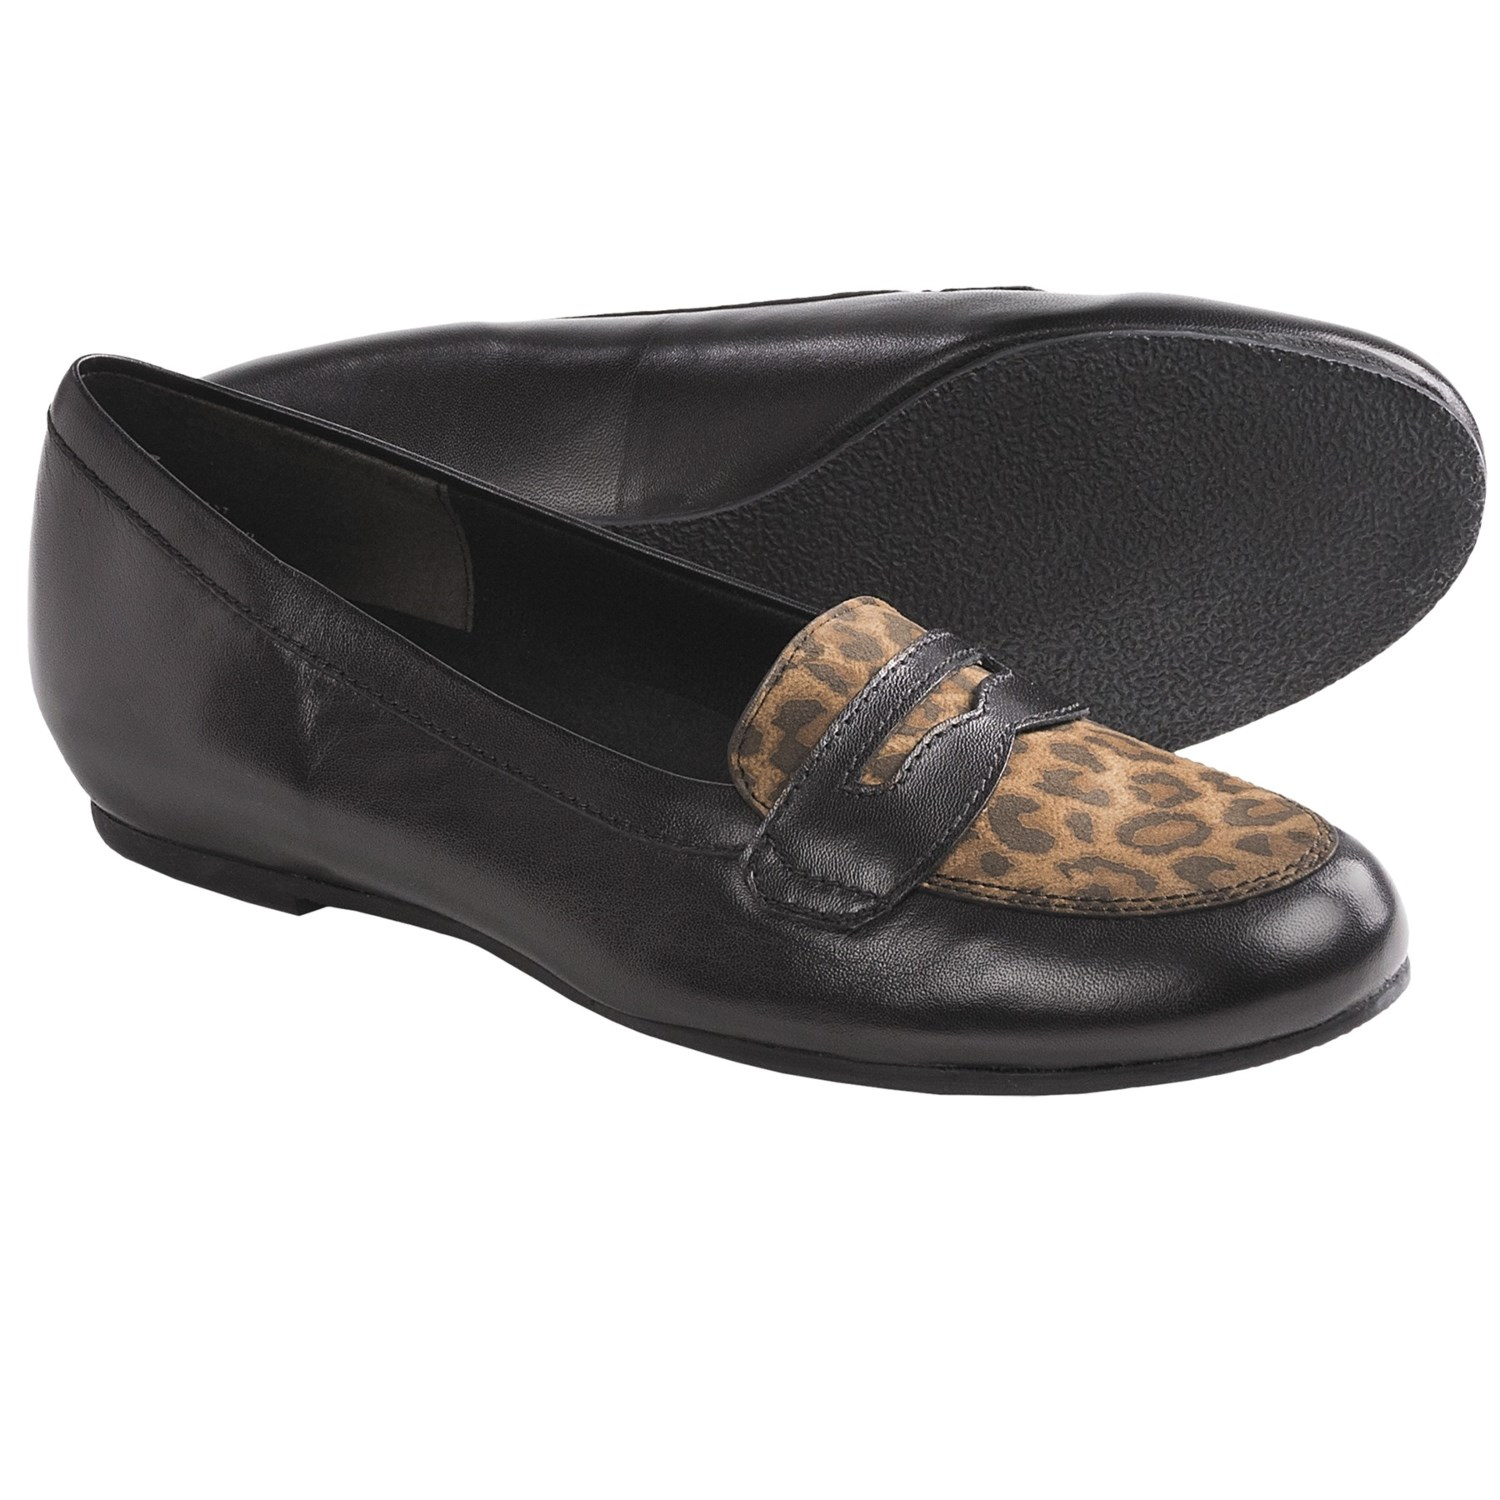 - munro-american-carrie-penny-loafer-shoes-for-women-in-black-kid-leopard~p~6071r_01~1500.2